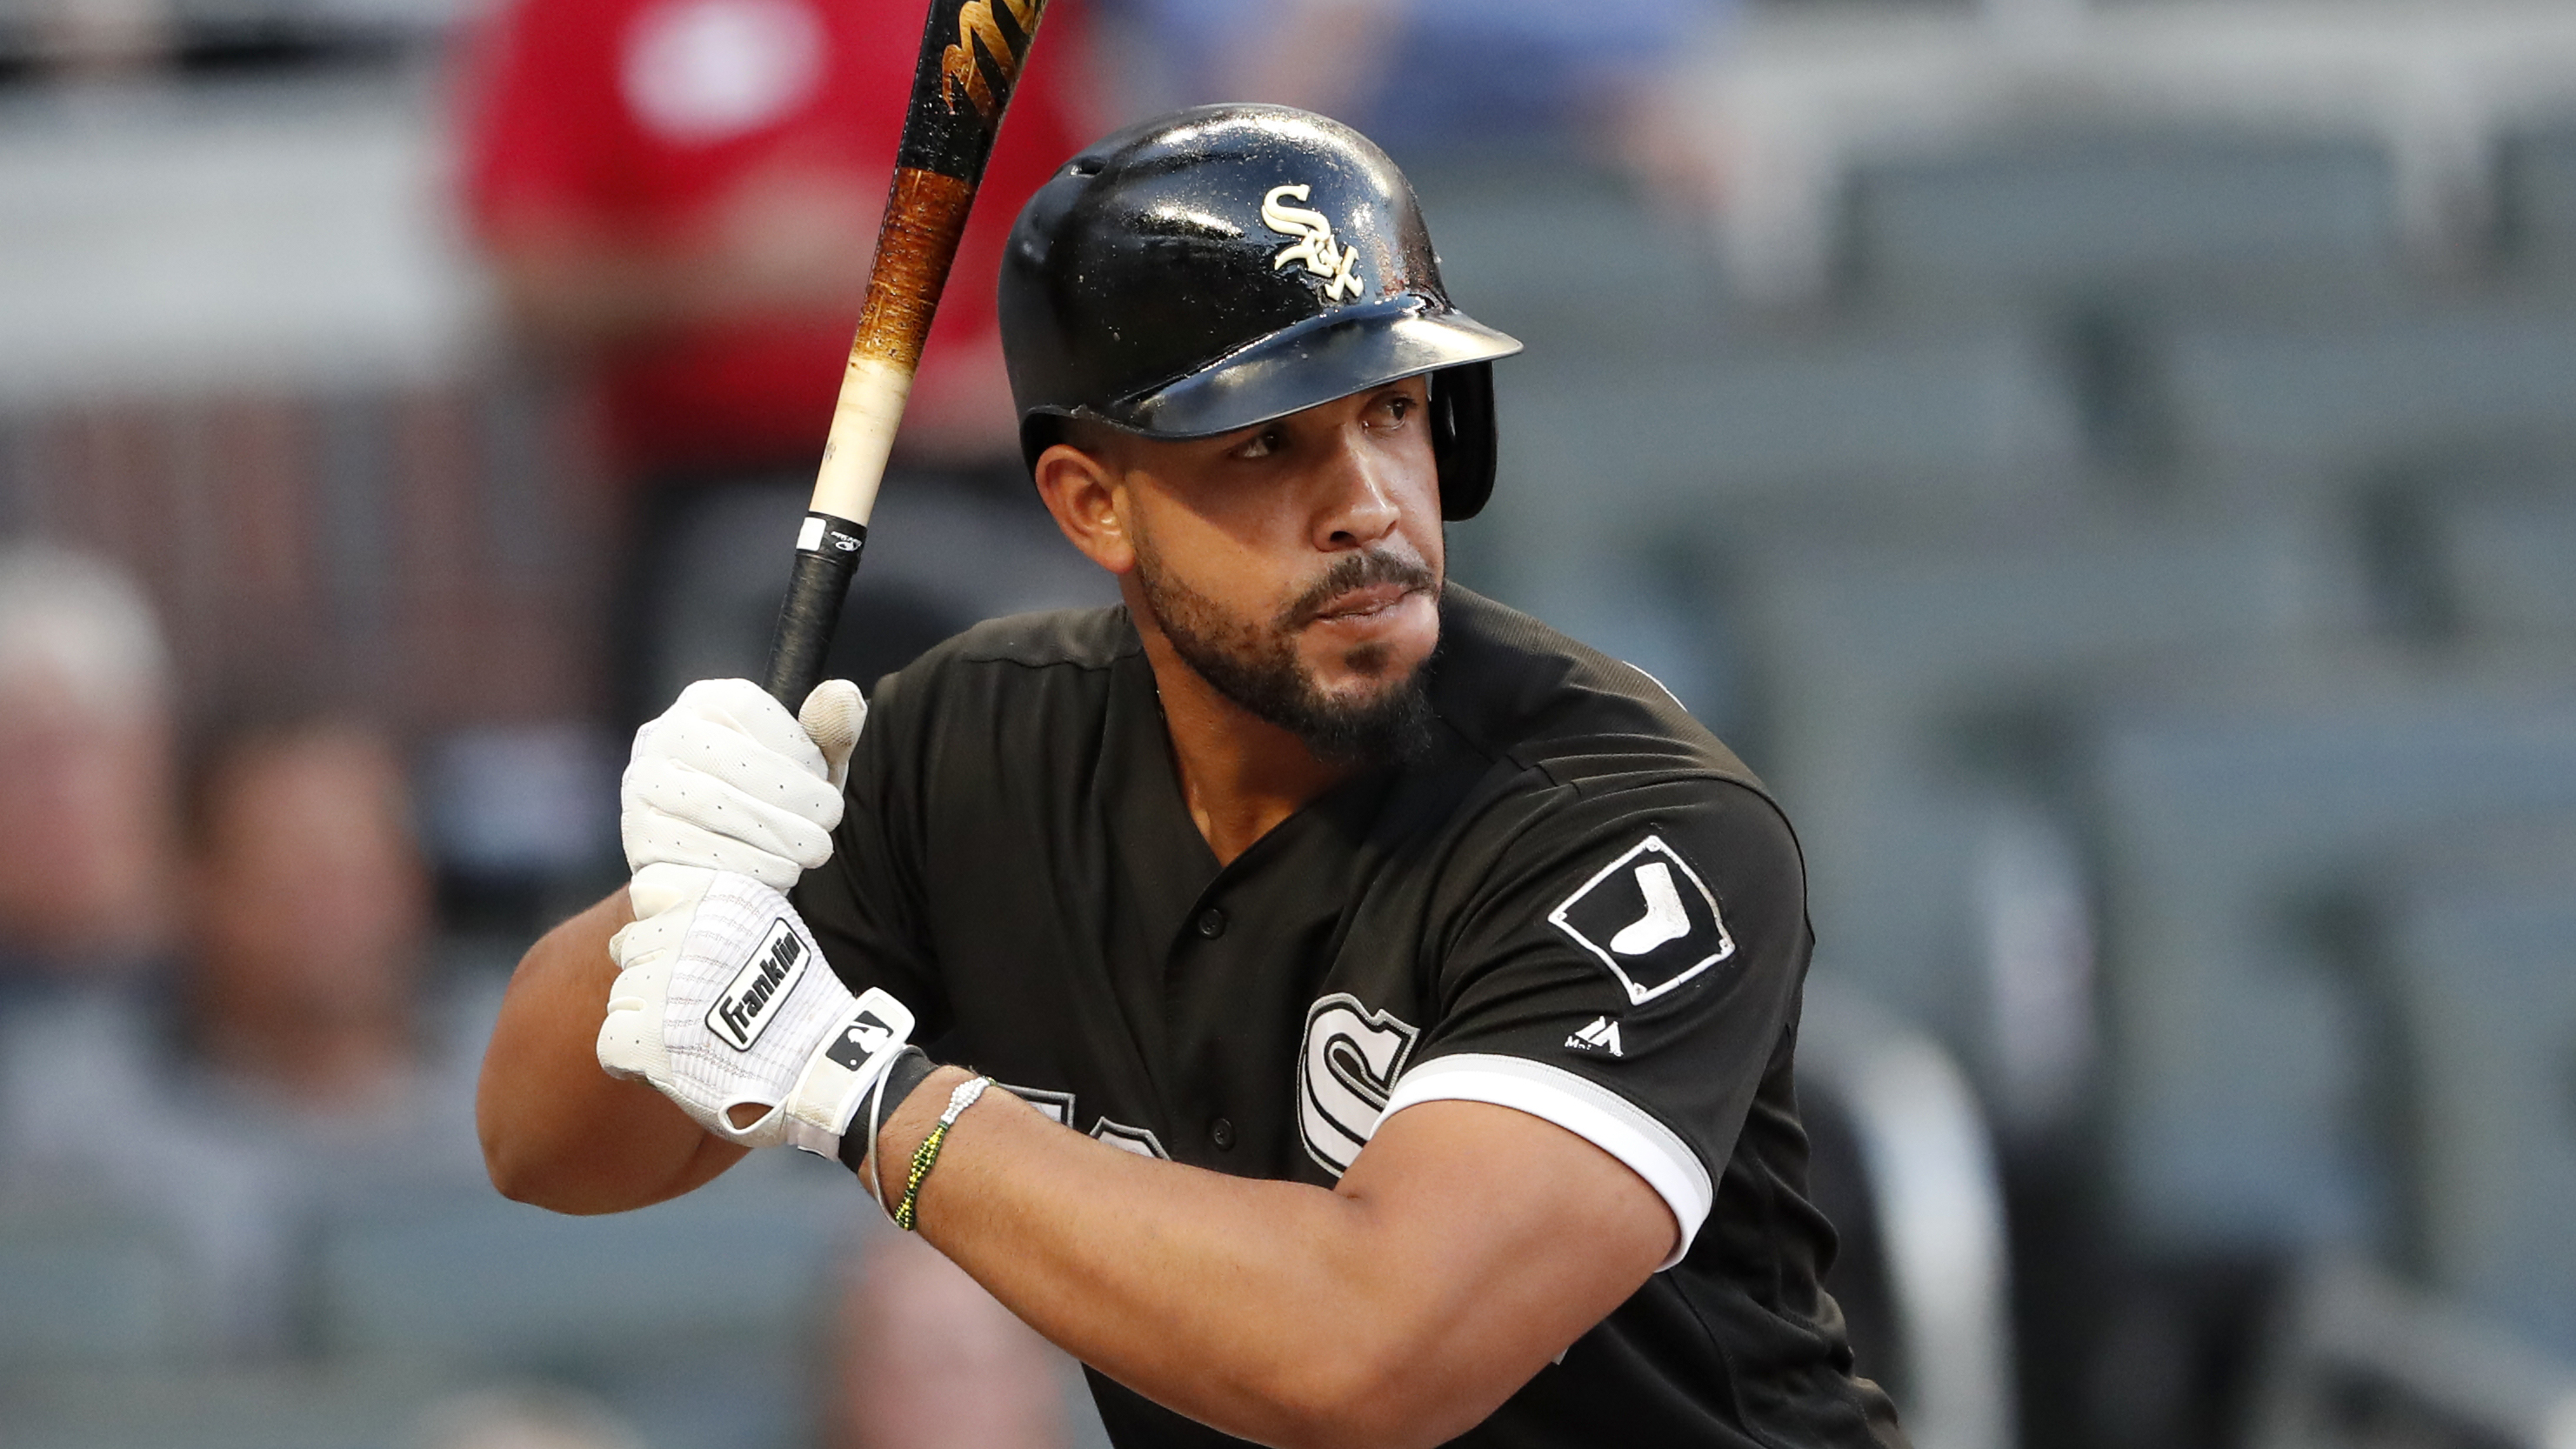 Both the White Sox and Jose Abreu have expressed interest in working out a deal that would bring the American League RBI leader back for at least another season.